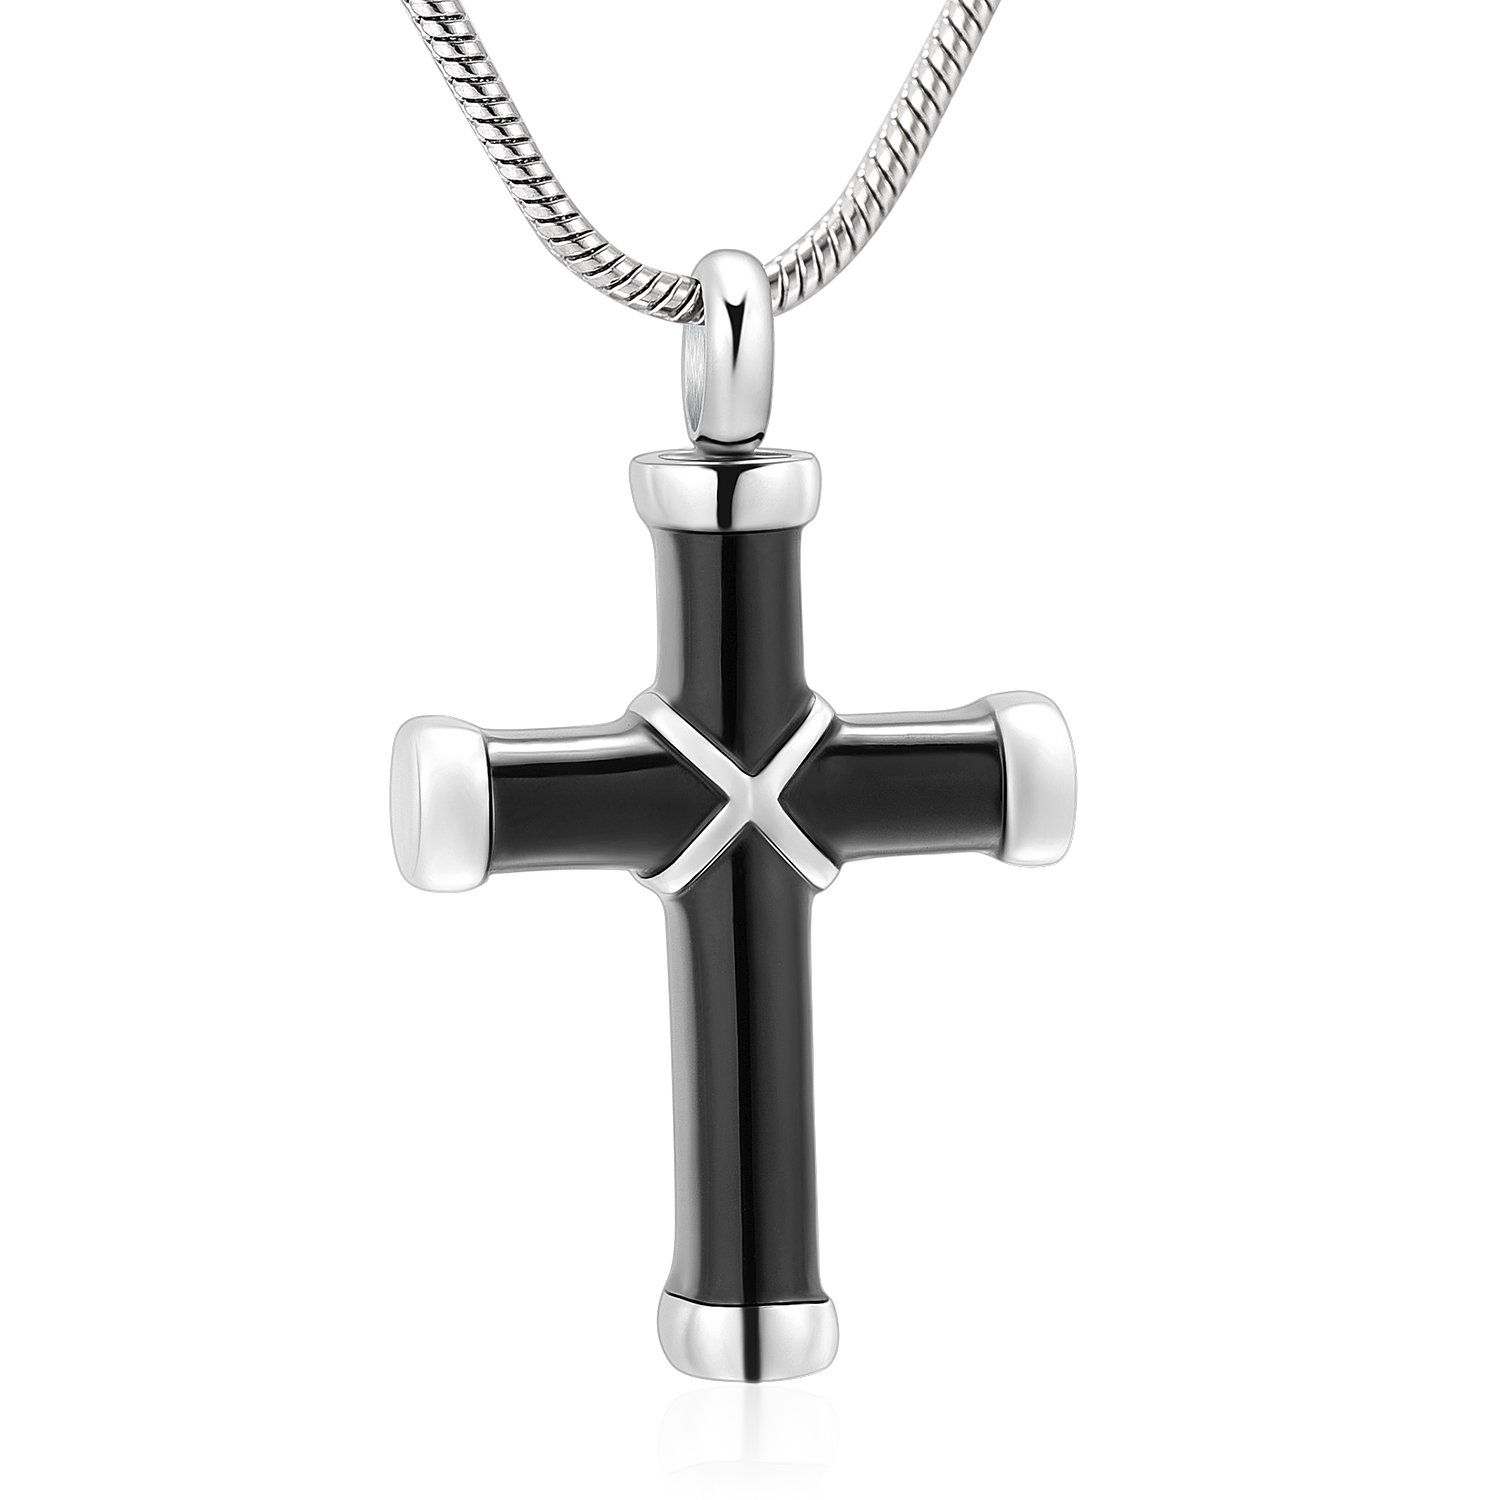 316l Stainless Steel Cremation Necklace Classic Cross Urn Pendant Memorial Jewelry for Ashes (black)